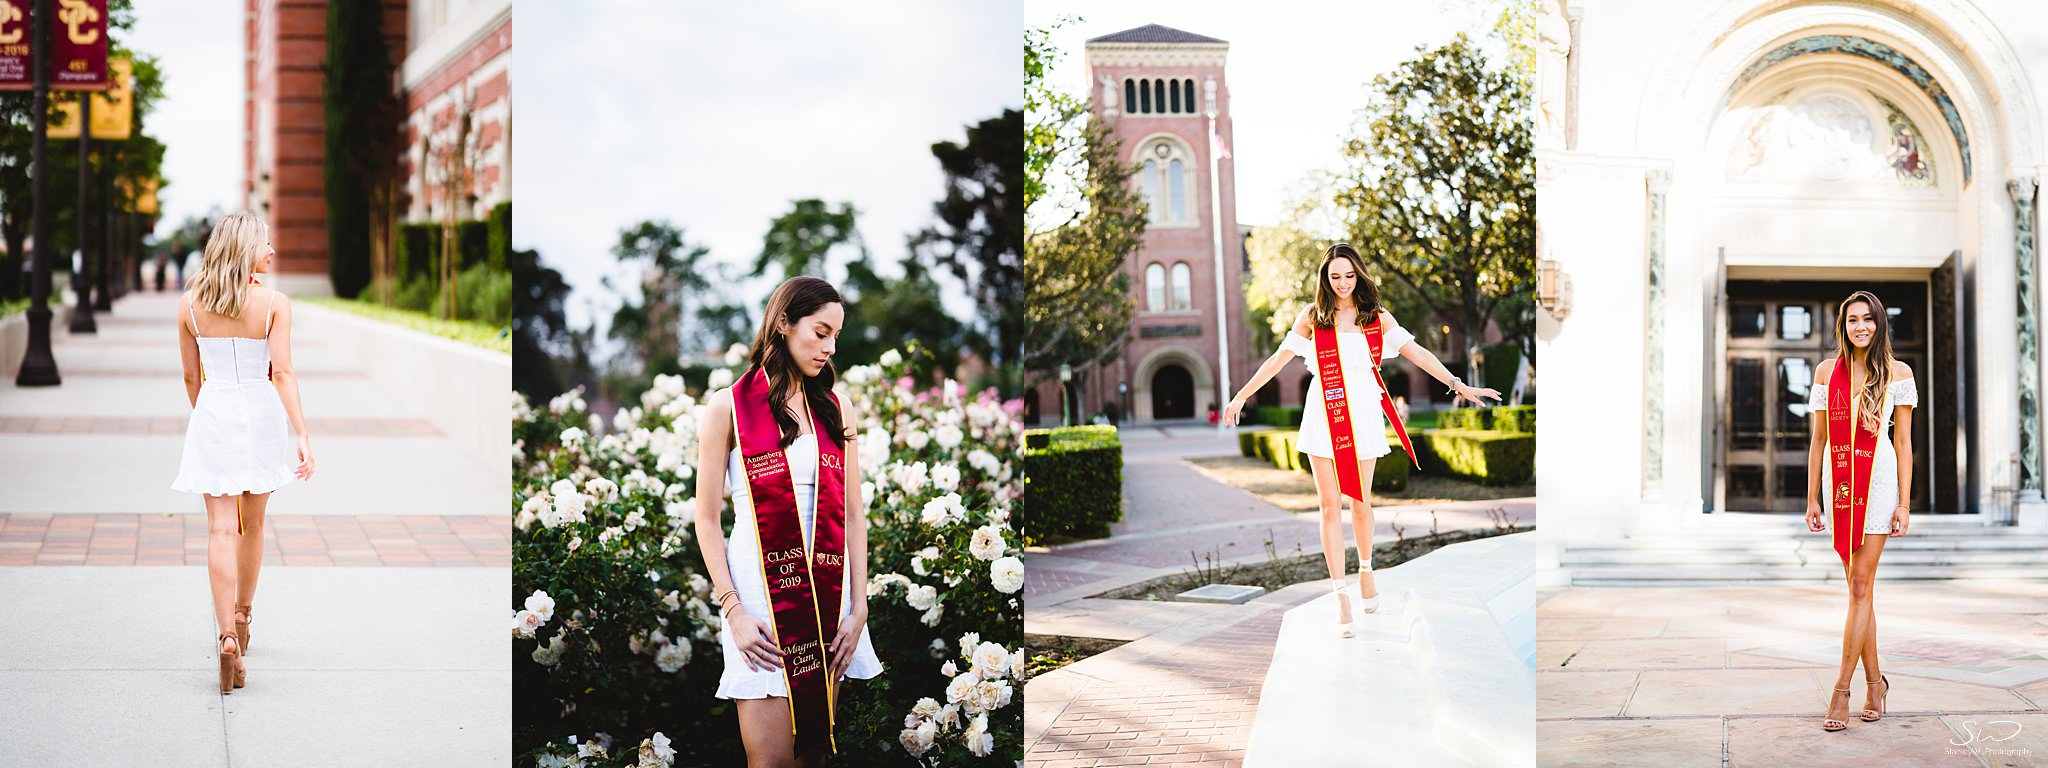 usc graduation portrait photographer los angeles